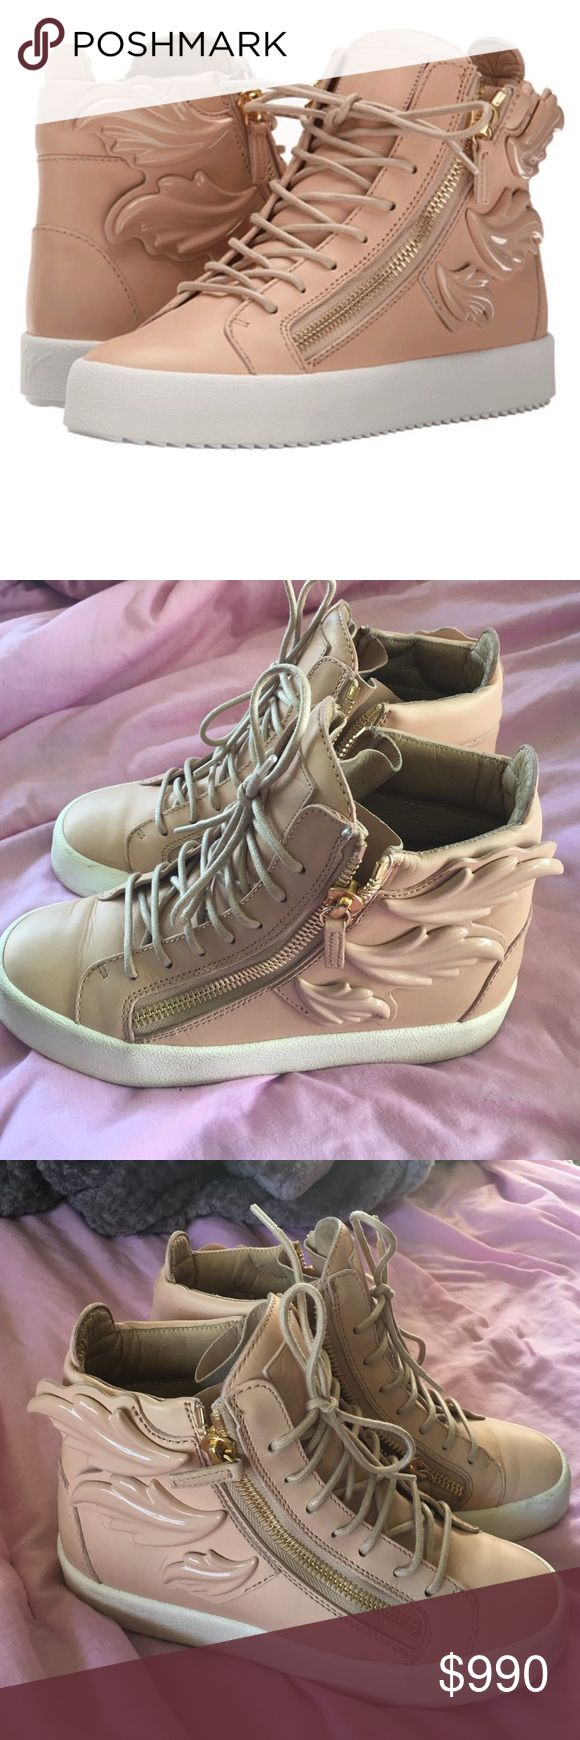 Pink Giuseppe Sneakers Light pink, winged Giuseppe sneakers Giuseppe Zanotti Shoes Sneakers